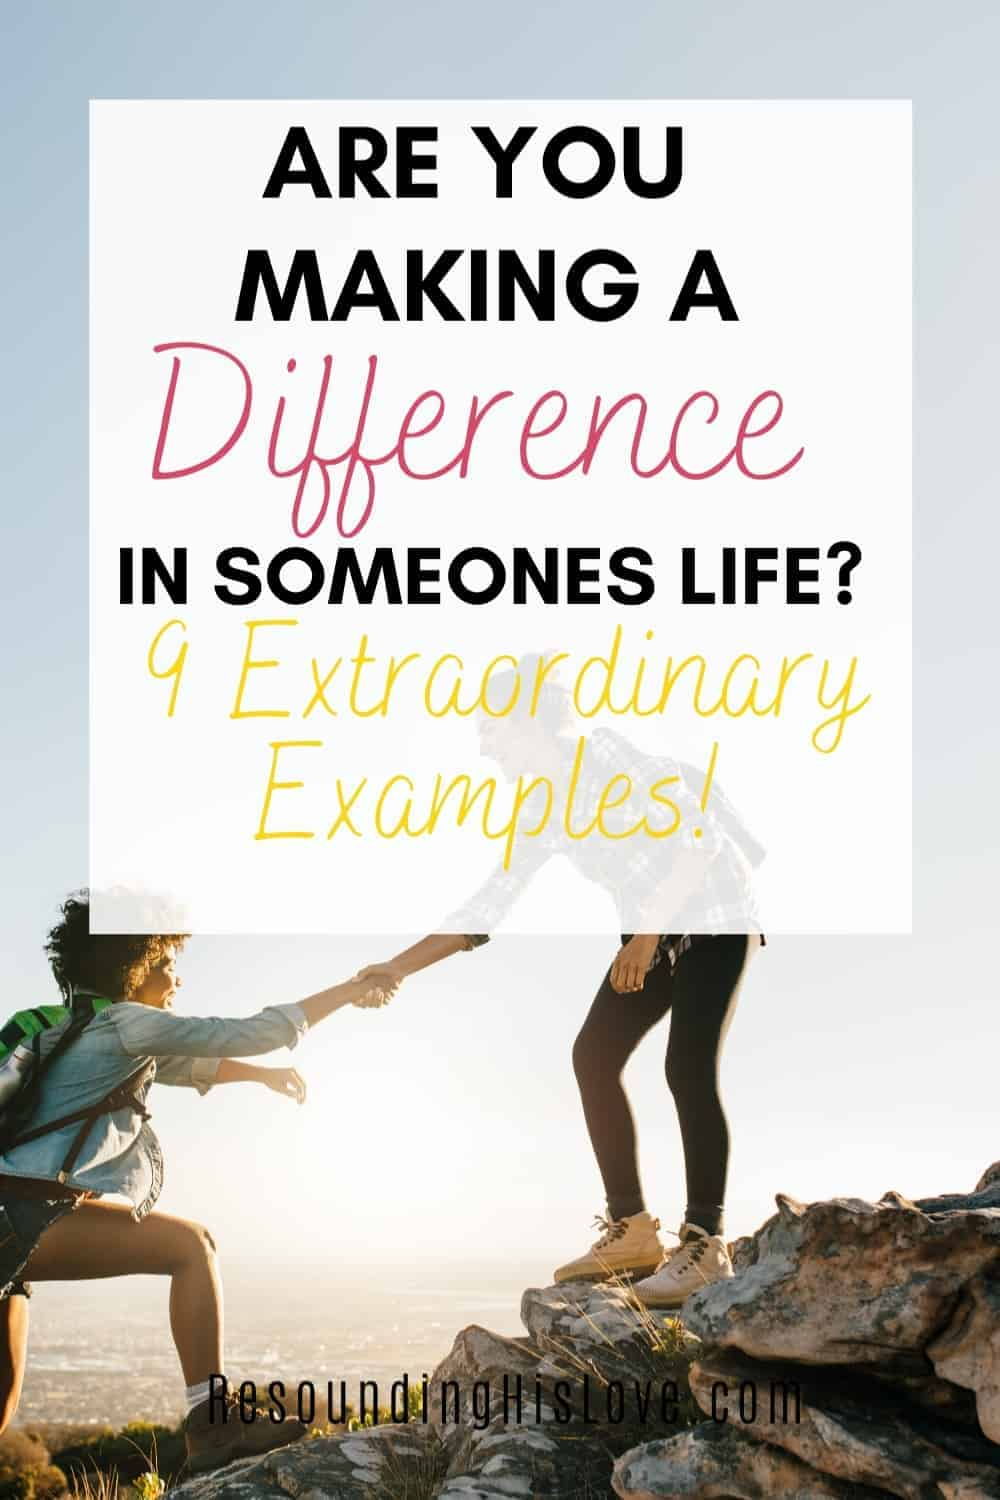 9 Extraordinary Examples of Making a Difference in Someone's Life